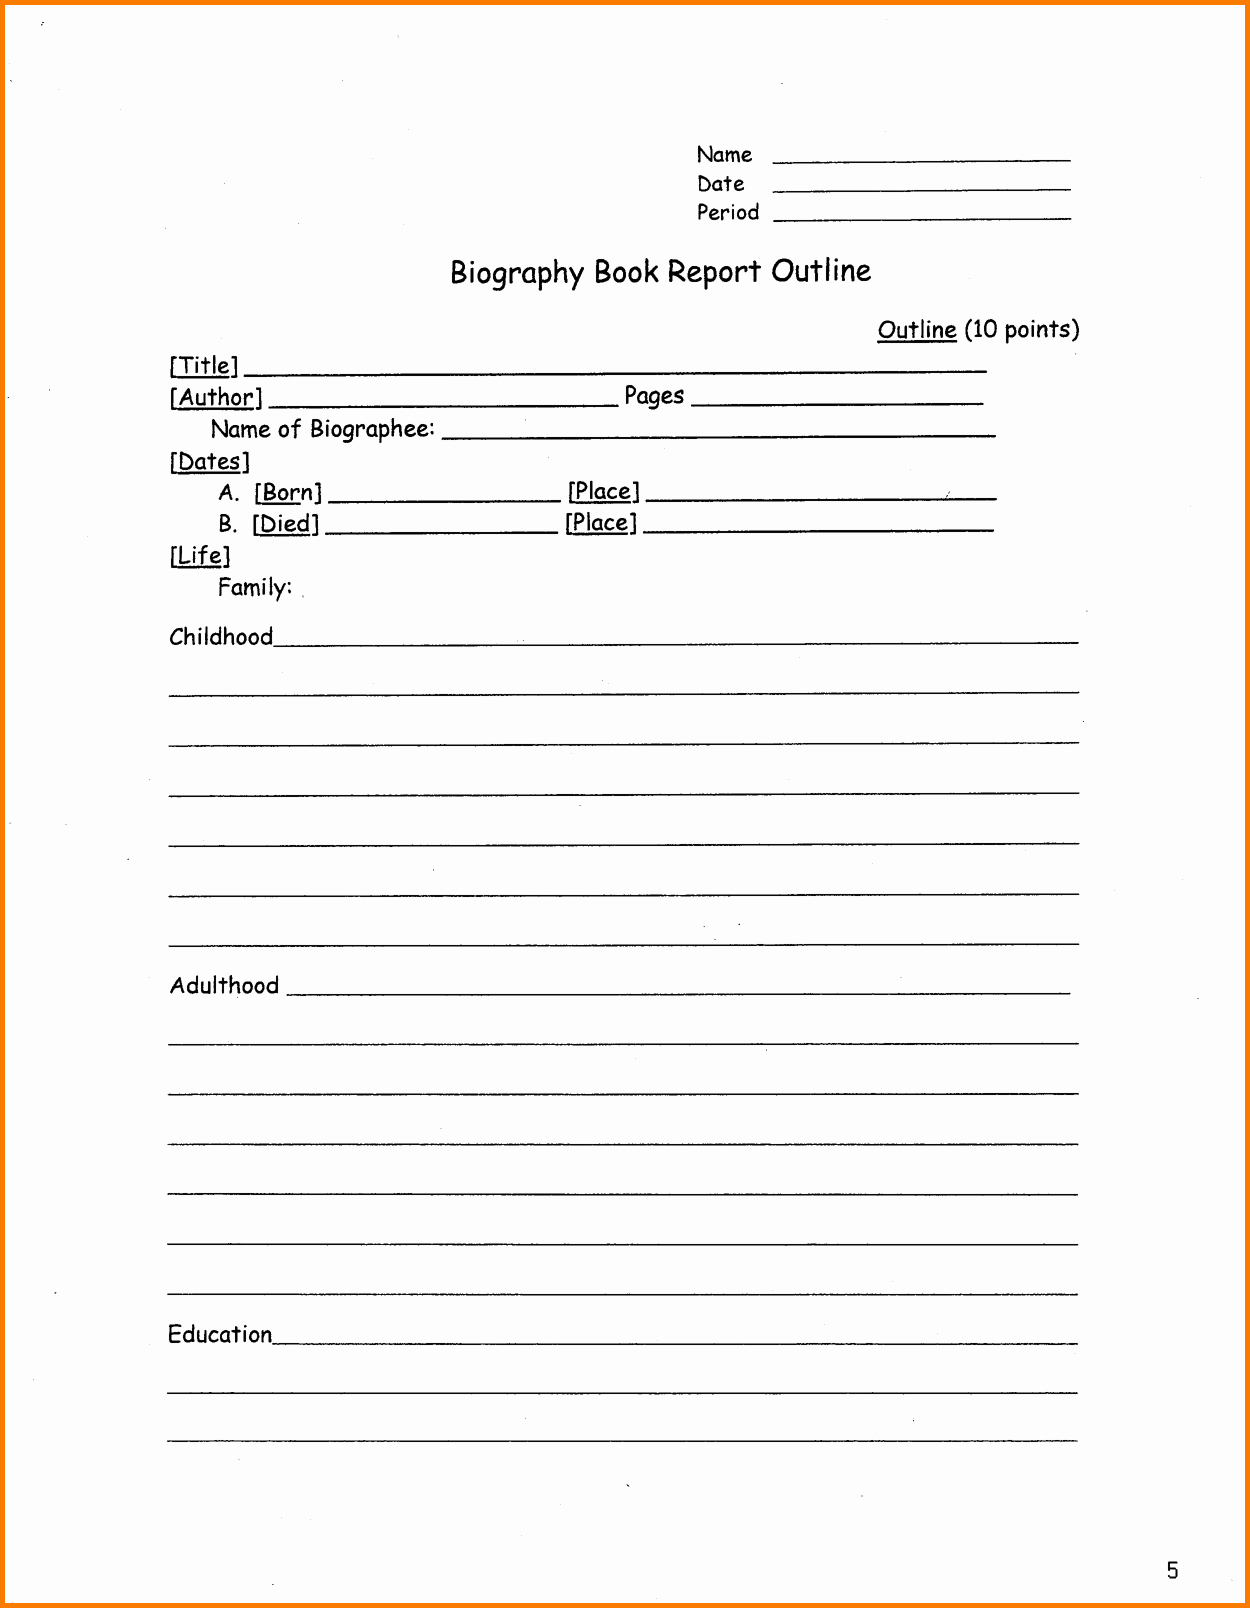 Book Report Outline Template Elegant A Book Report Outline Bamboodownunder